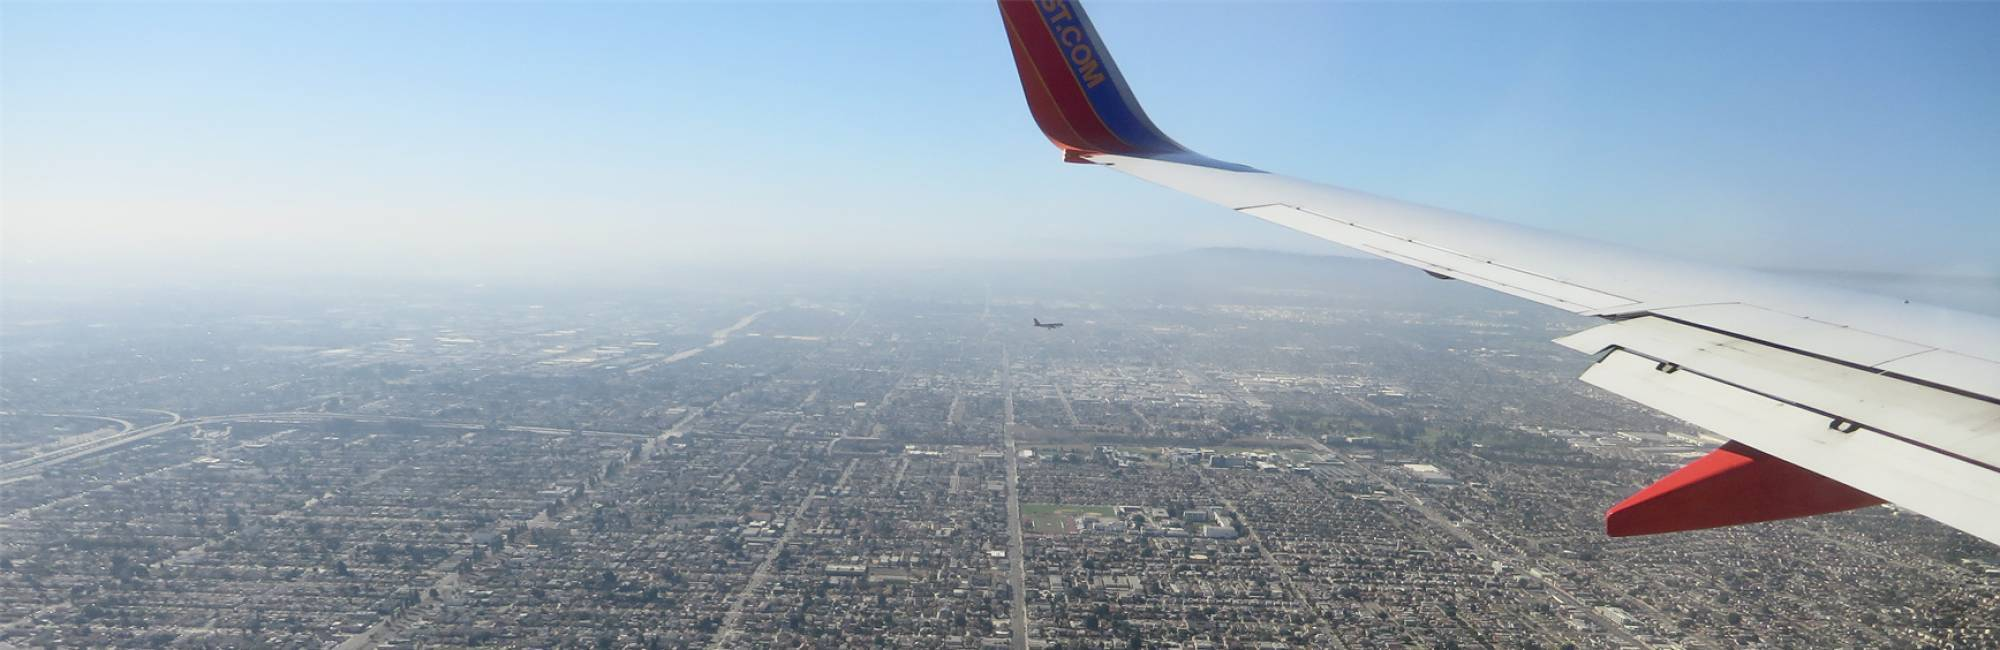 Two planes fly over densely populated Los Angeles as smog blurs the horizon.